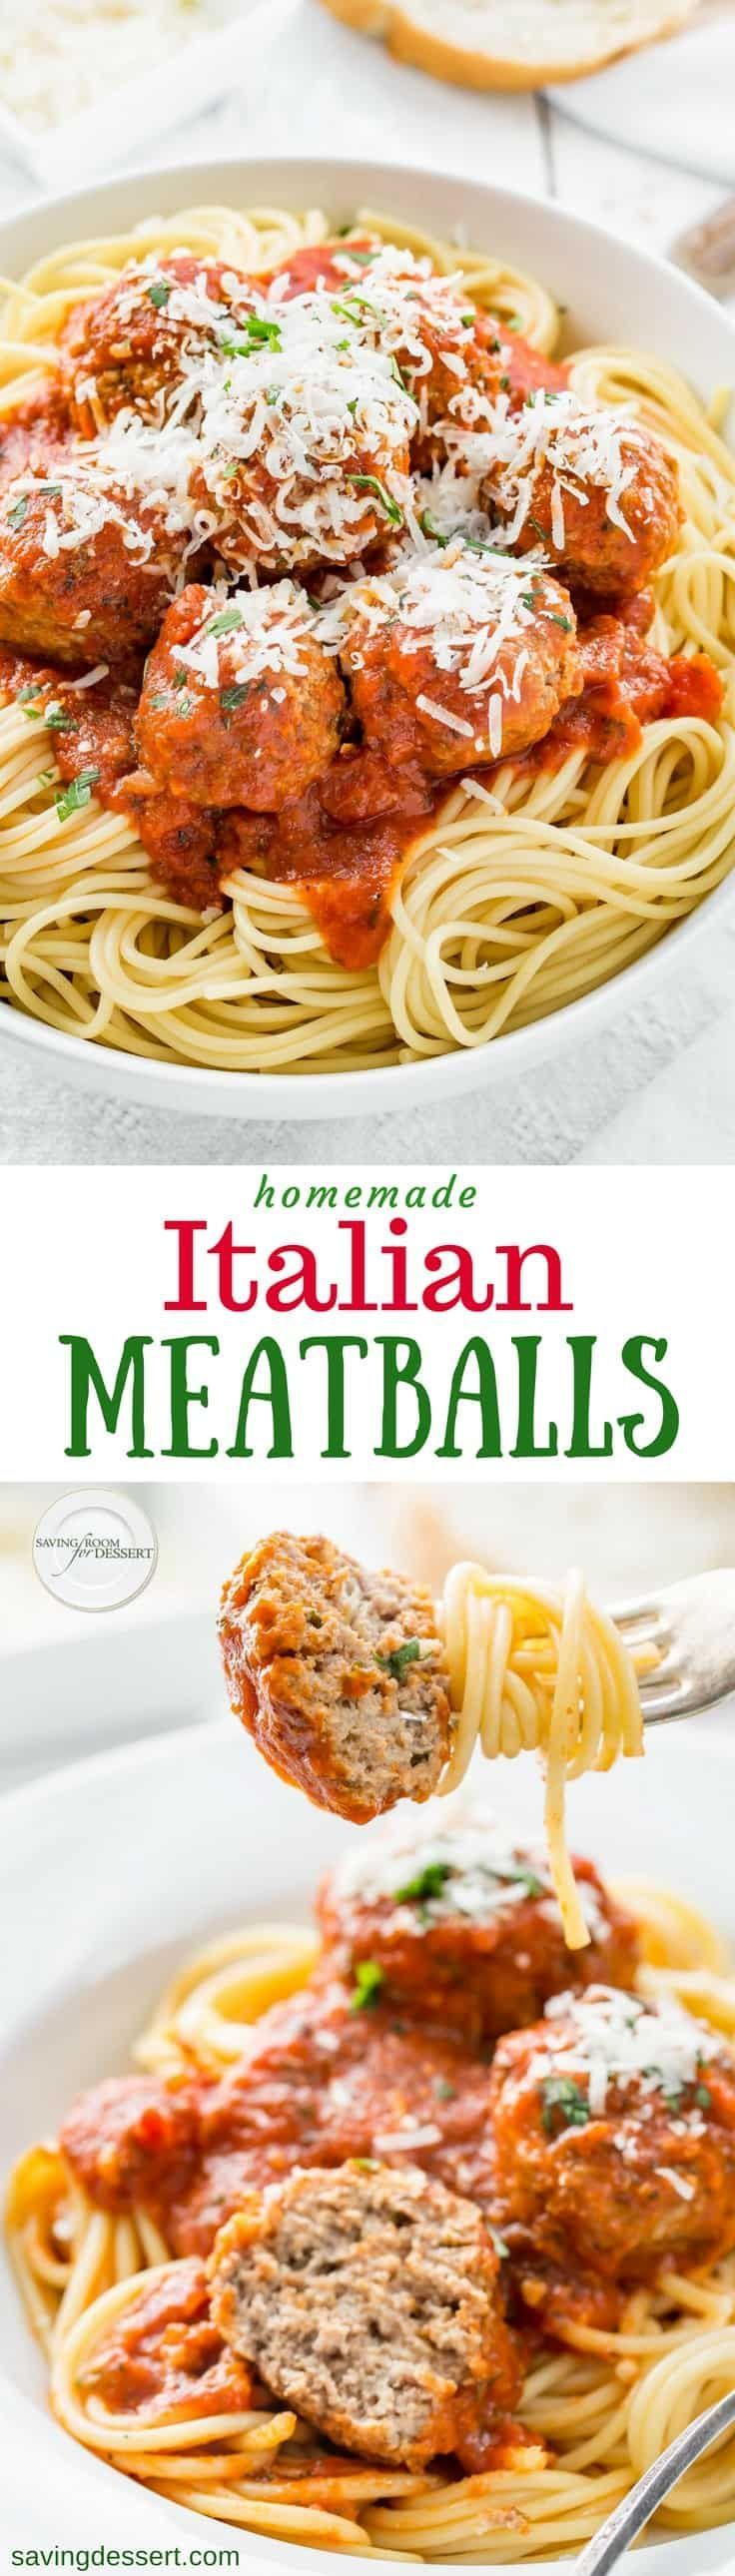 Everyone needs a great Italian Meatball Recipe! Our tested recipe is easy to make and the results are consistently terrific. These Italian styled meatballs are super juicy, tender and delicious, with easy make-ahead and freezable directions too! www.savingdessert.com #savingroomfordessert #meatballs #italianmeatballs #italianmeatballrecipe #italian #spaghettimeatballs #dinner #freezable